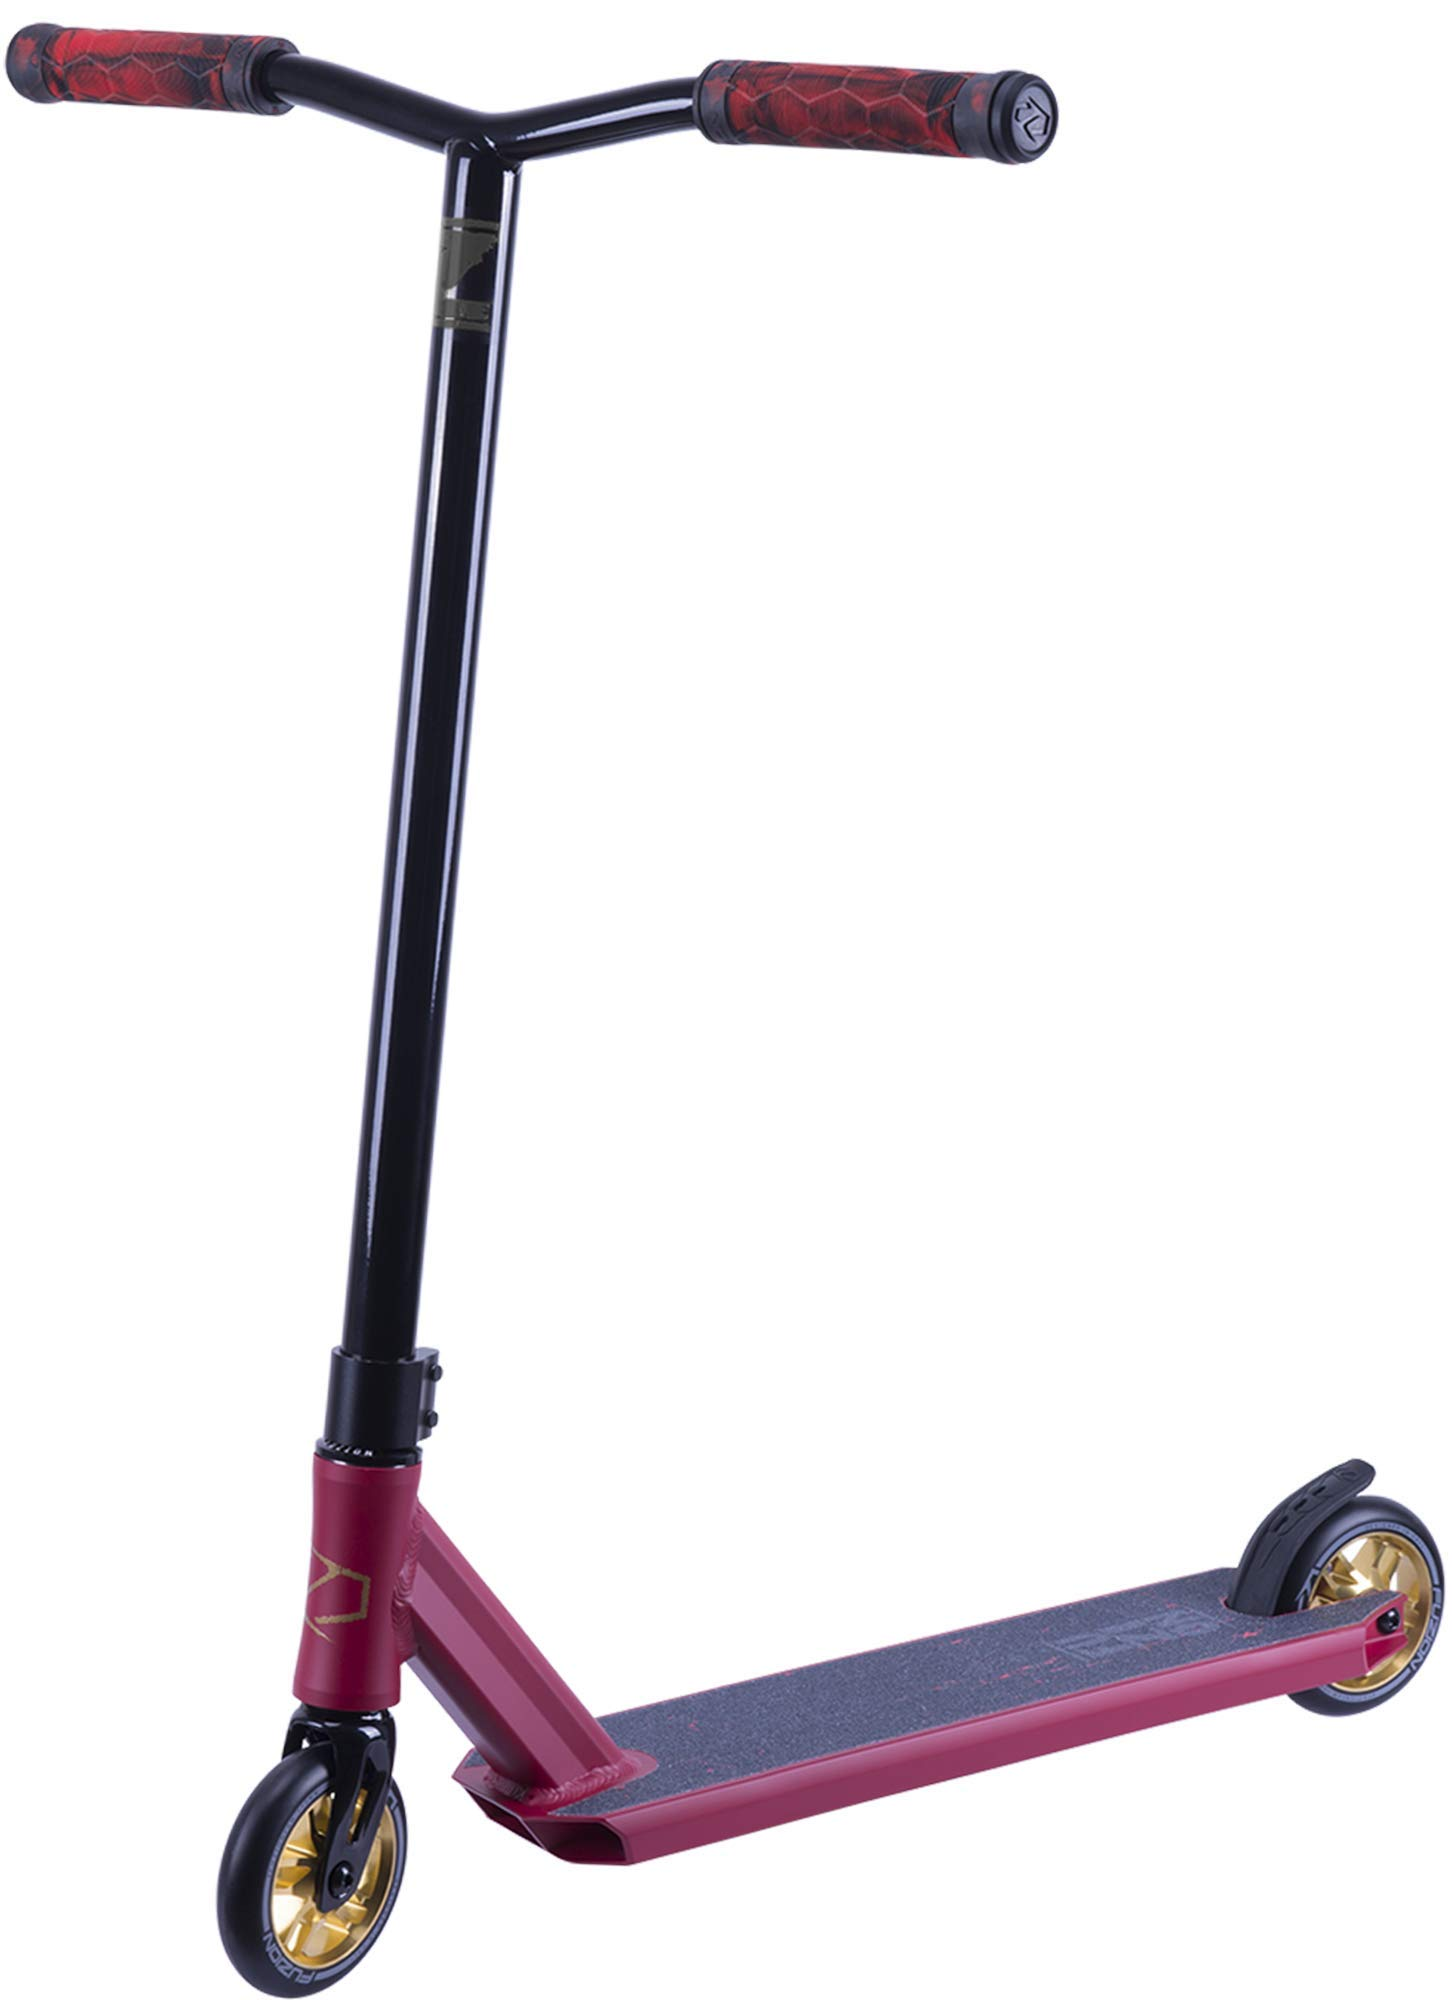 Fuzion Z250 Pro Scooters - Trick Scooter - Intermediate and Beginner Stunt Scooters for Kids 8 Years and Up, Teens and Adults - Durable Freestyle Kick Scooter for Boys and Girls (2019 Scorched Red) by Fuzion